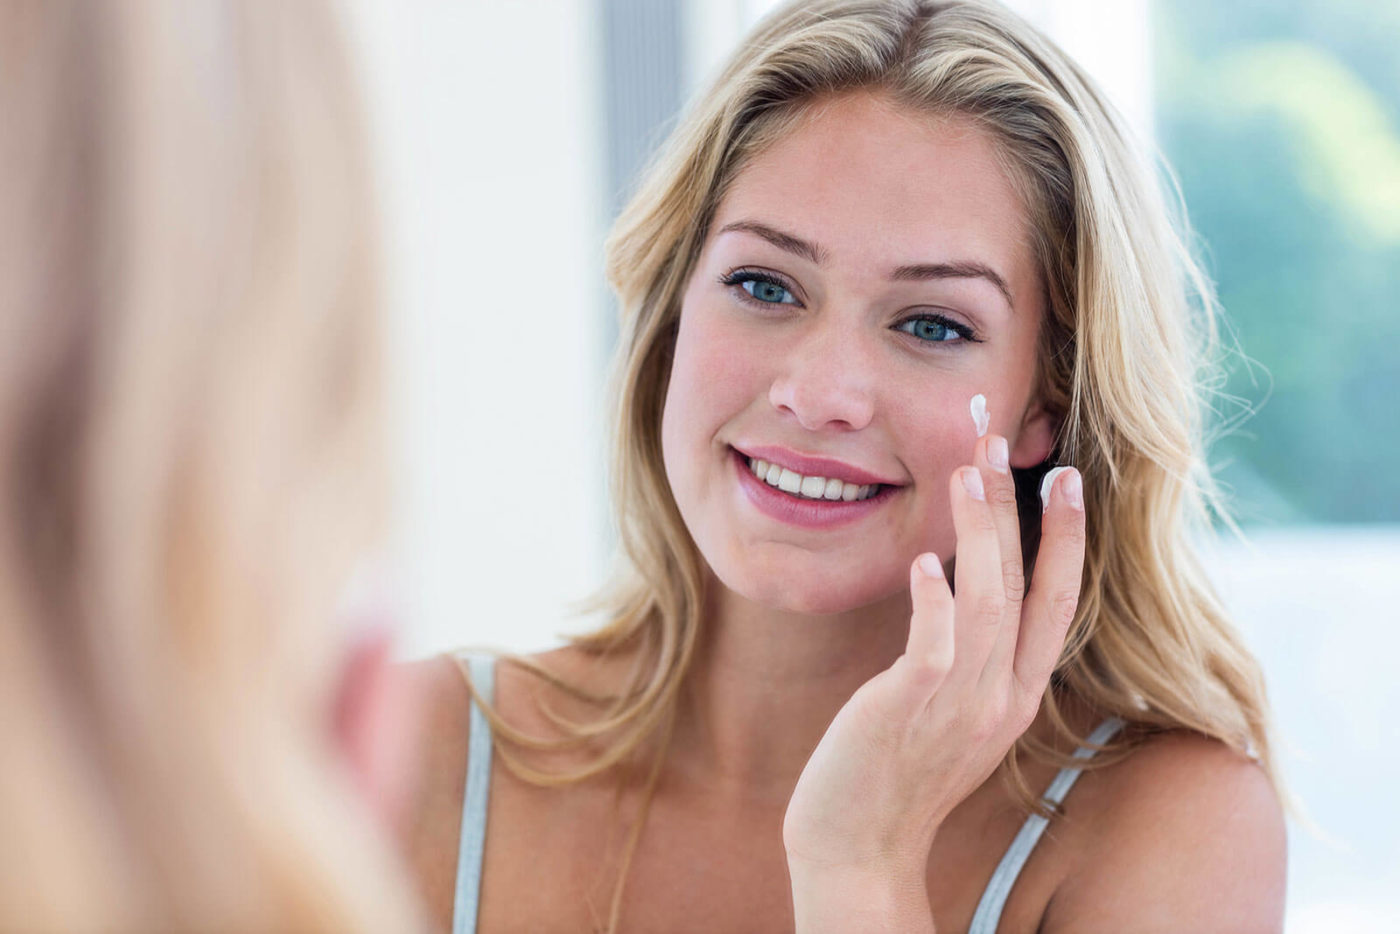 Woman with blond hair is smiling and putting skincare on her cheeks with her fingers